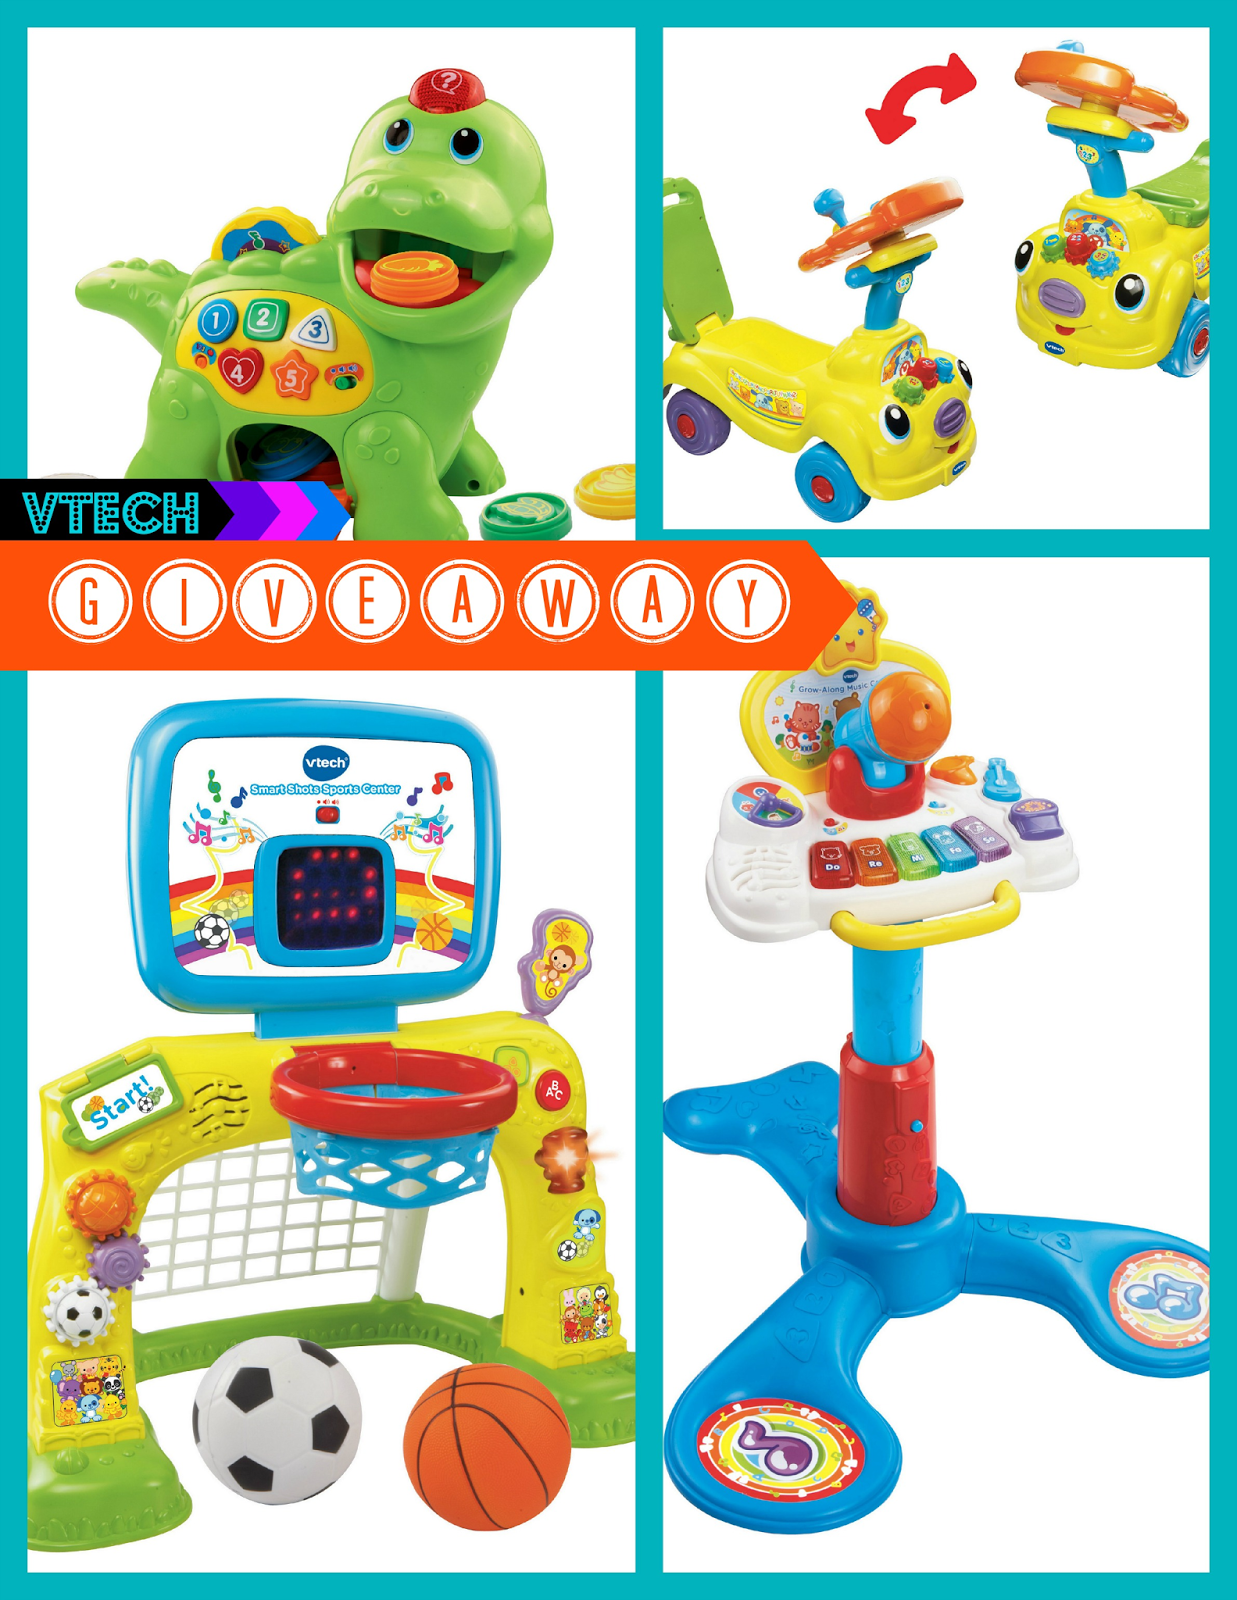 http://www.themagnoliabarn.com/2014/11/vtech-bundle-pack-review-and-giveaway.html